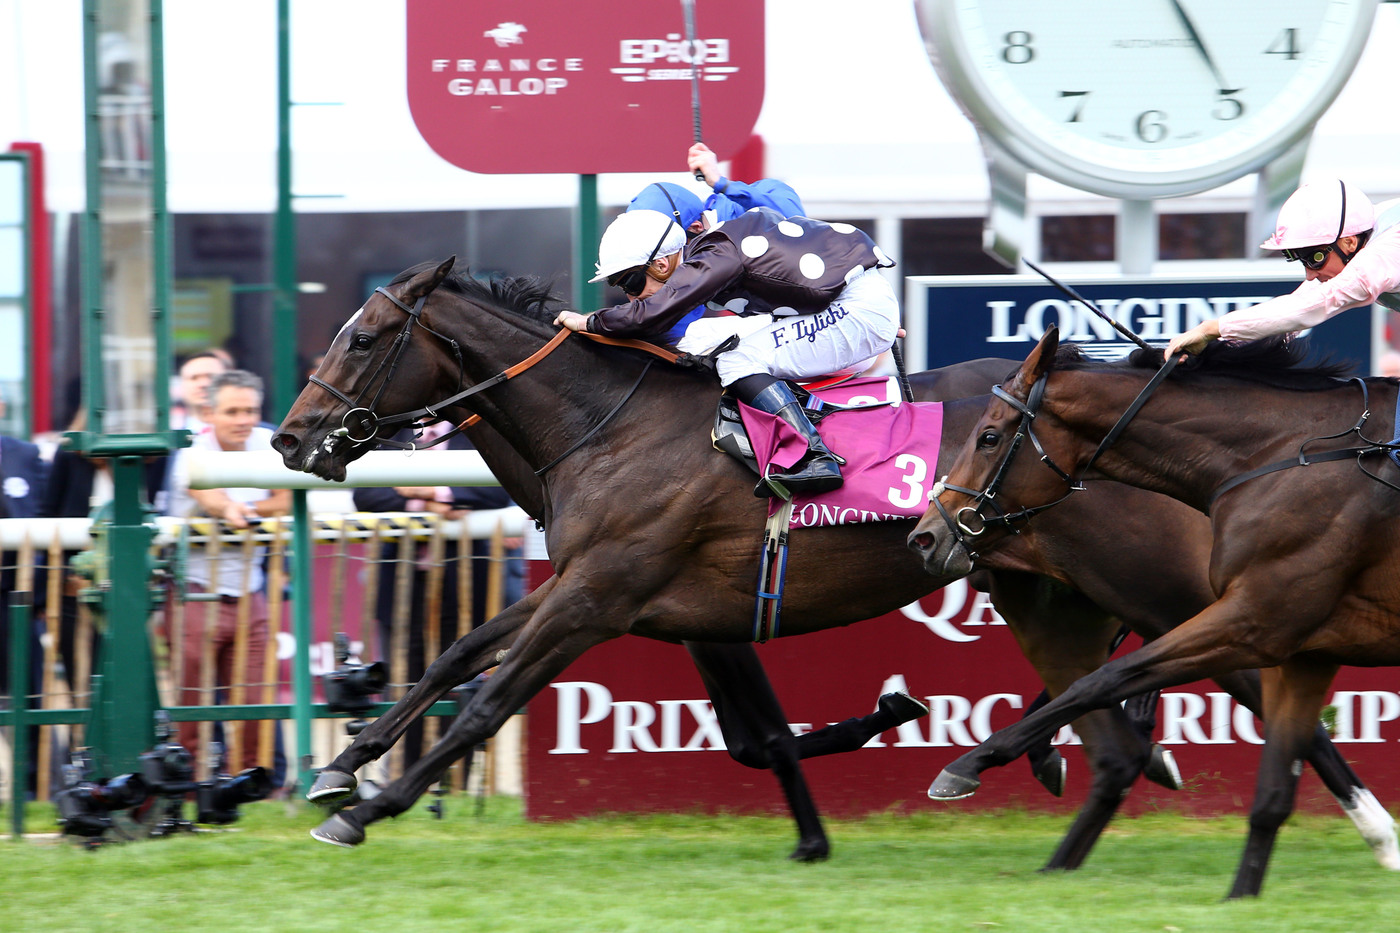 Longines Flat Racing Event: Longines timed the victory of Found and Ryan Moore at the 2016 Qatar Prix de l'Arc de Triomphe 1